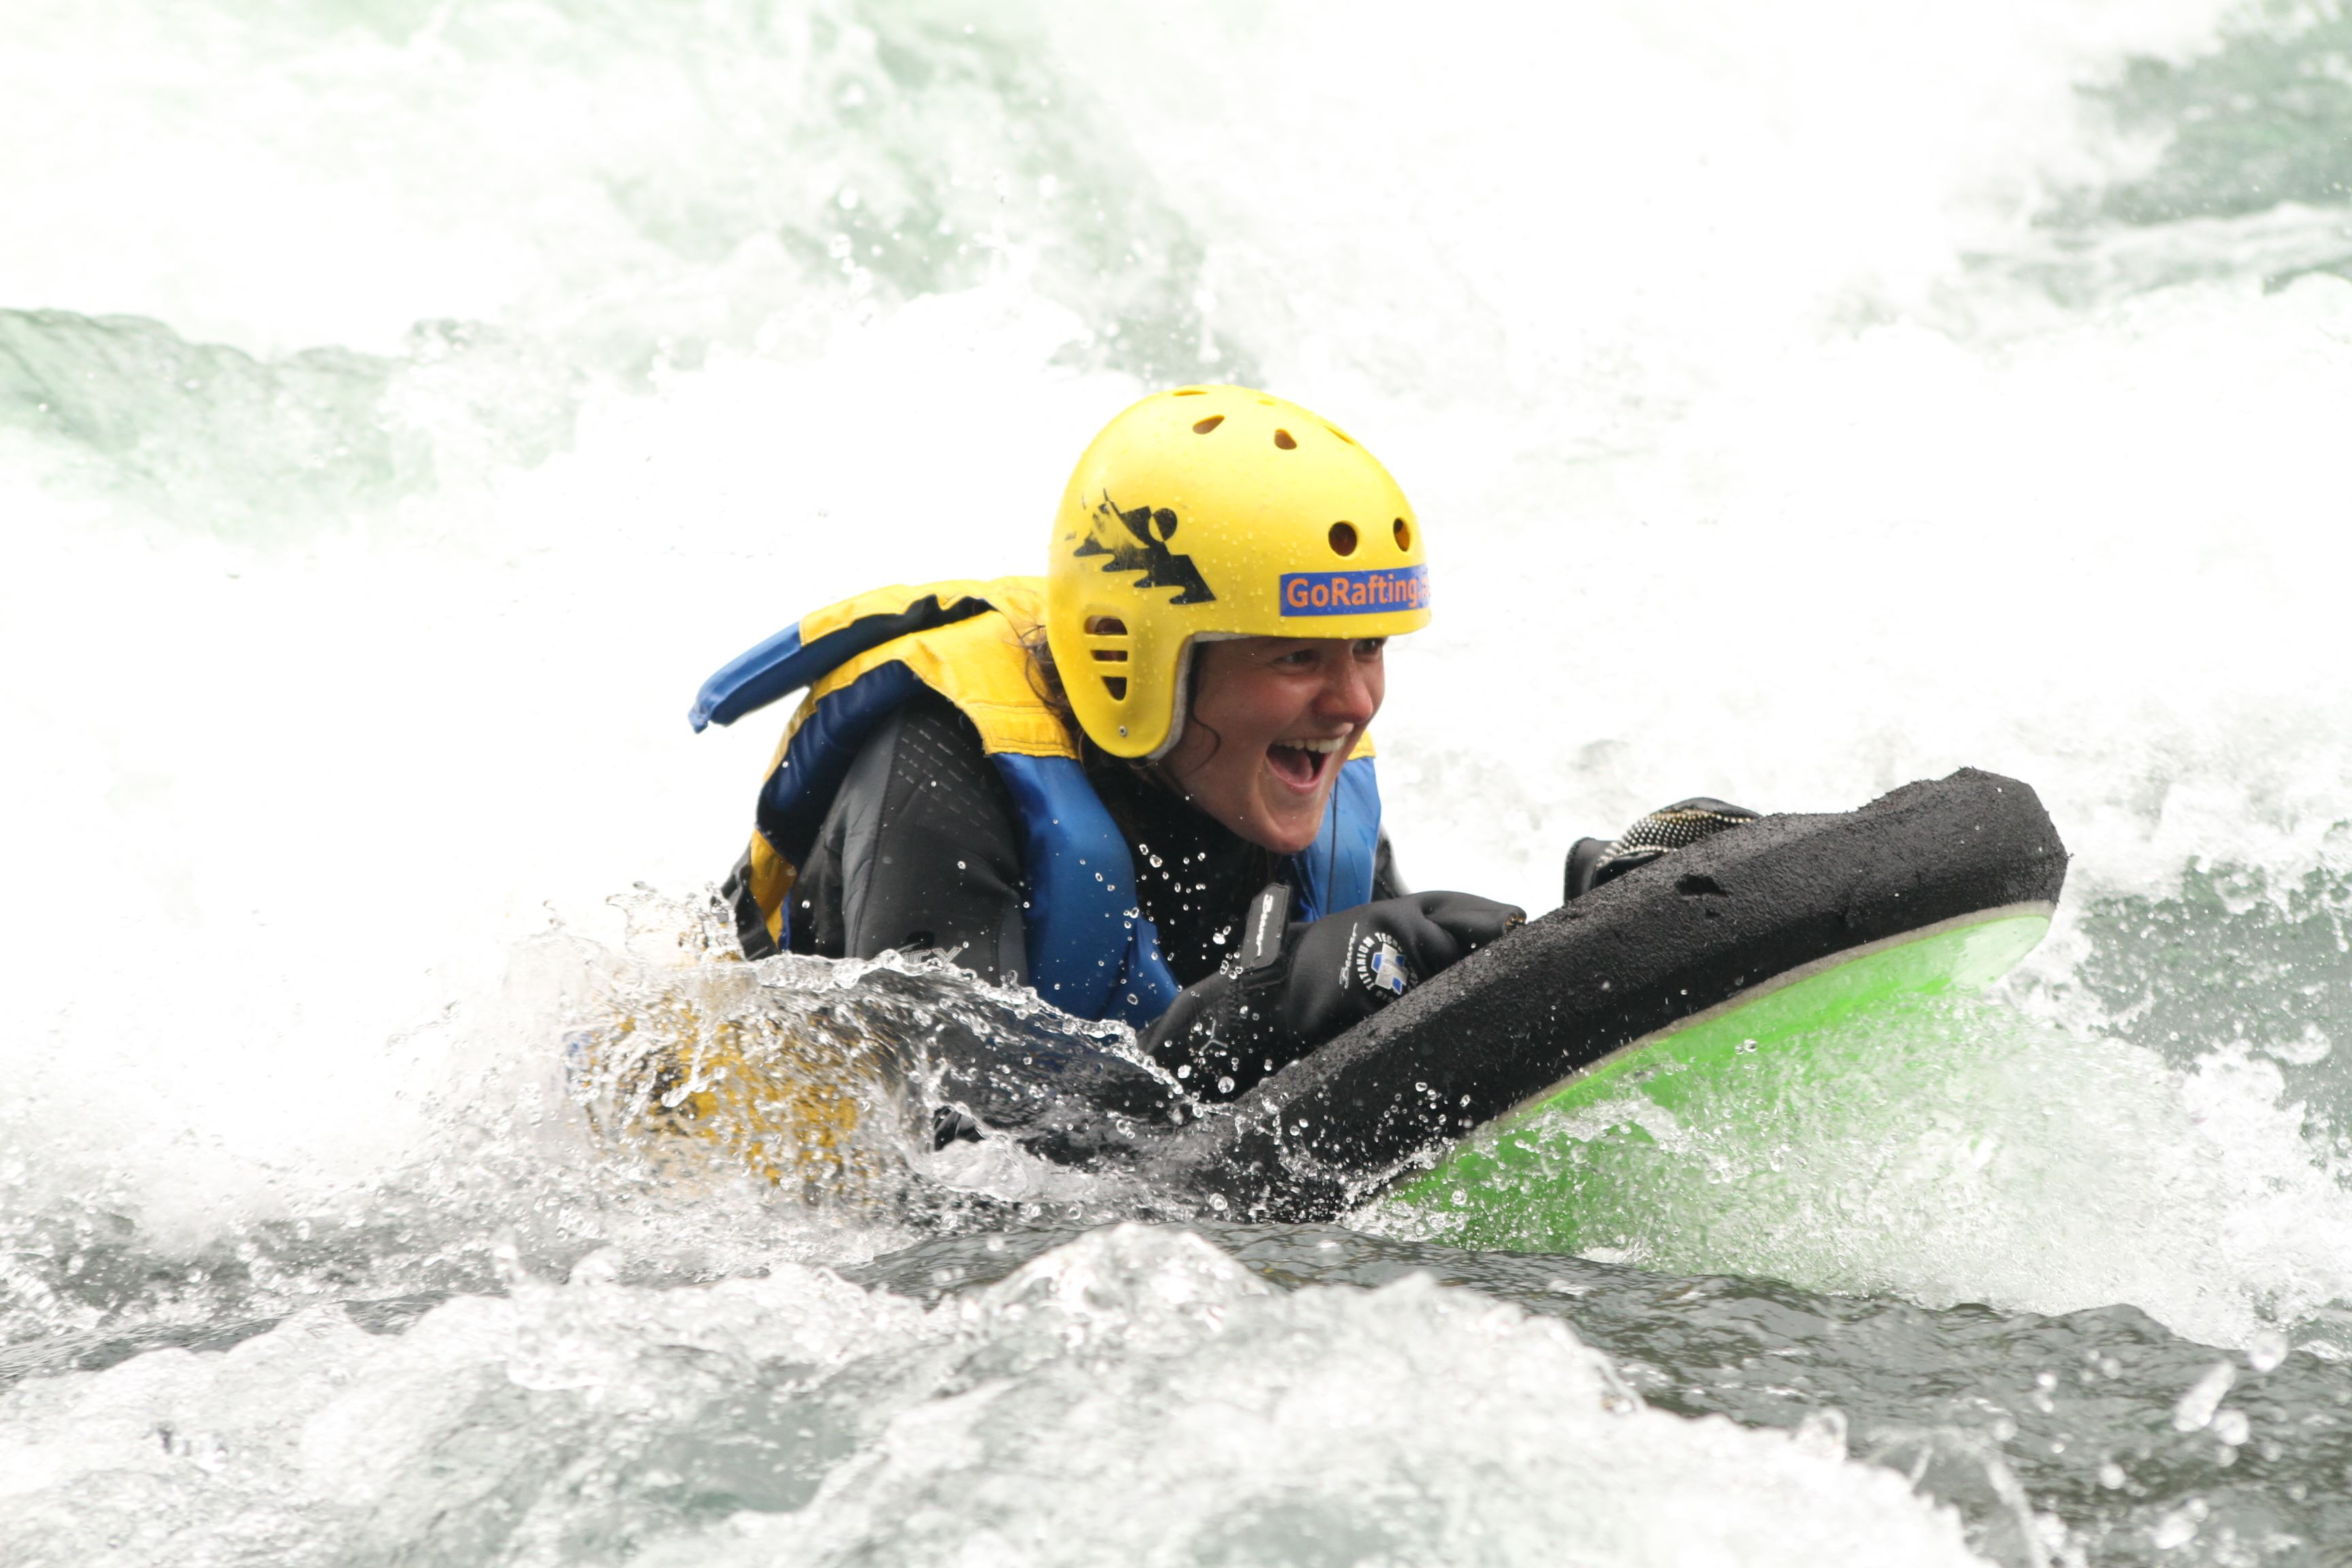 Rafting Fifty/Fifty